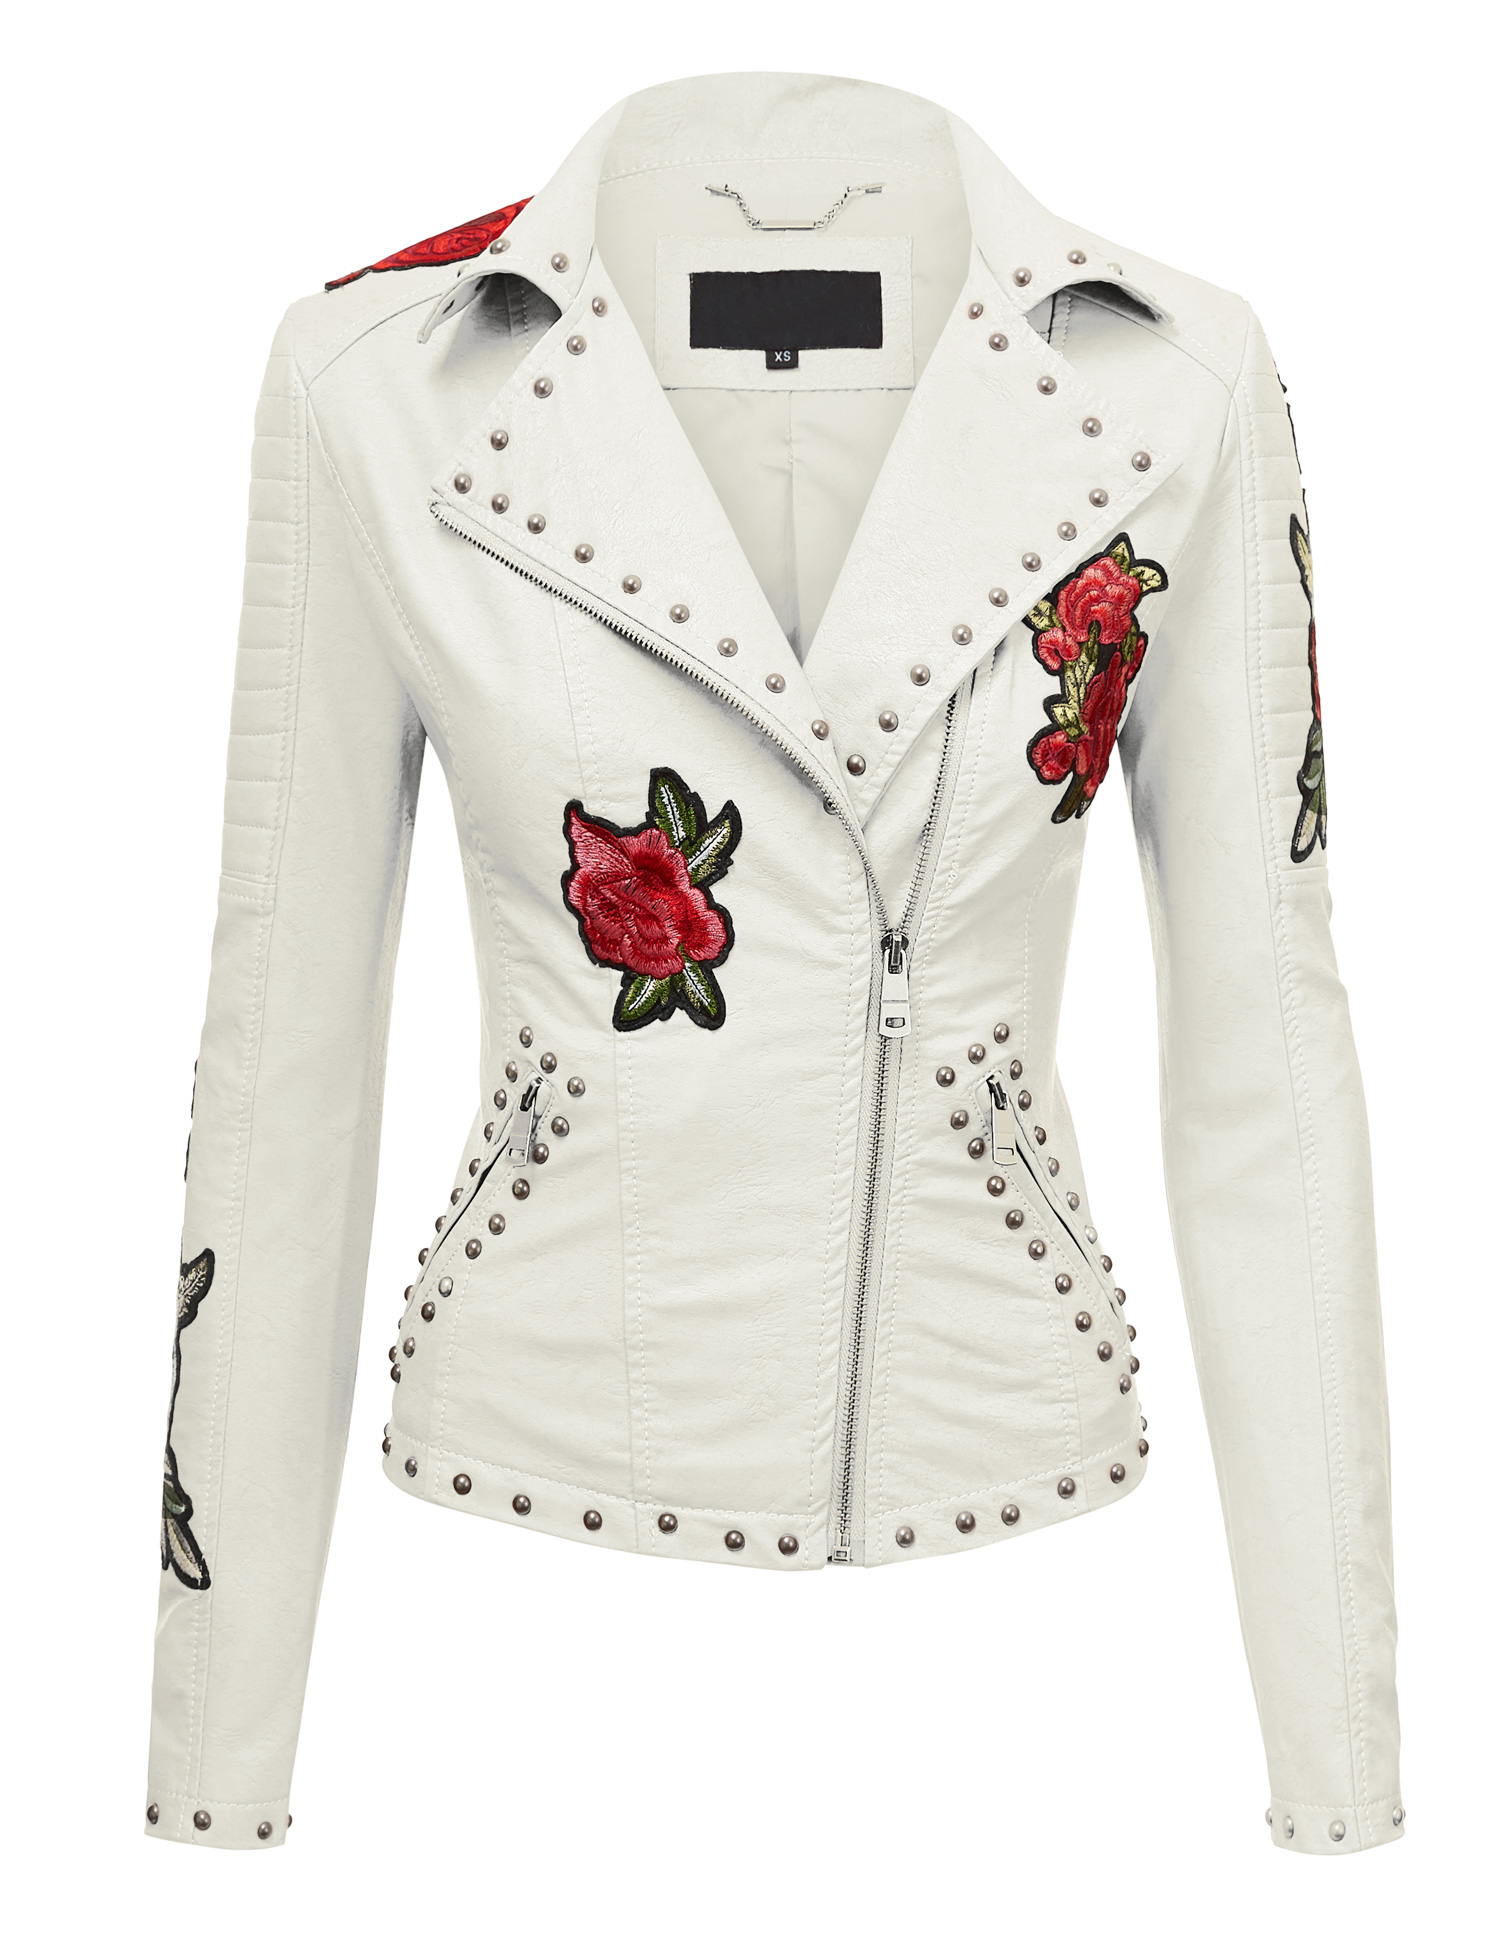 Made By Johnny WJC1495 Womens Floral Embroidered Faux Leather Motorcycle Biker Jacket L White